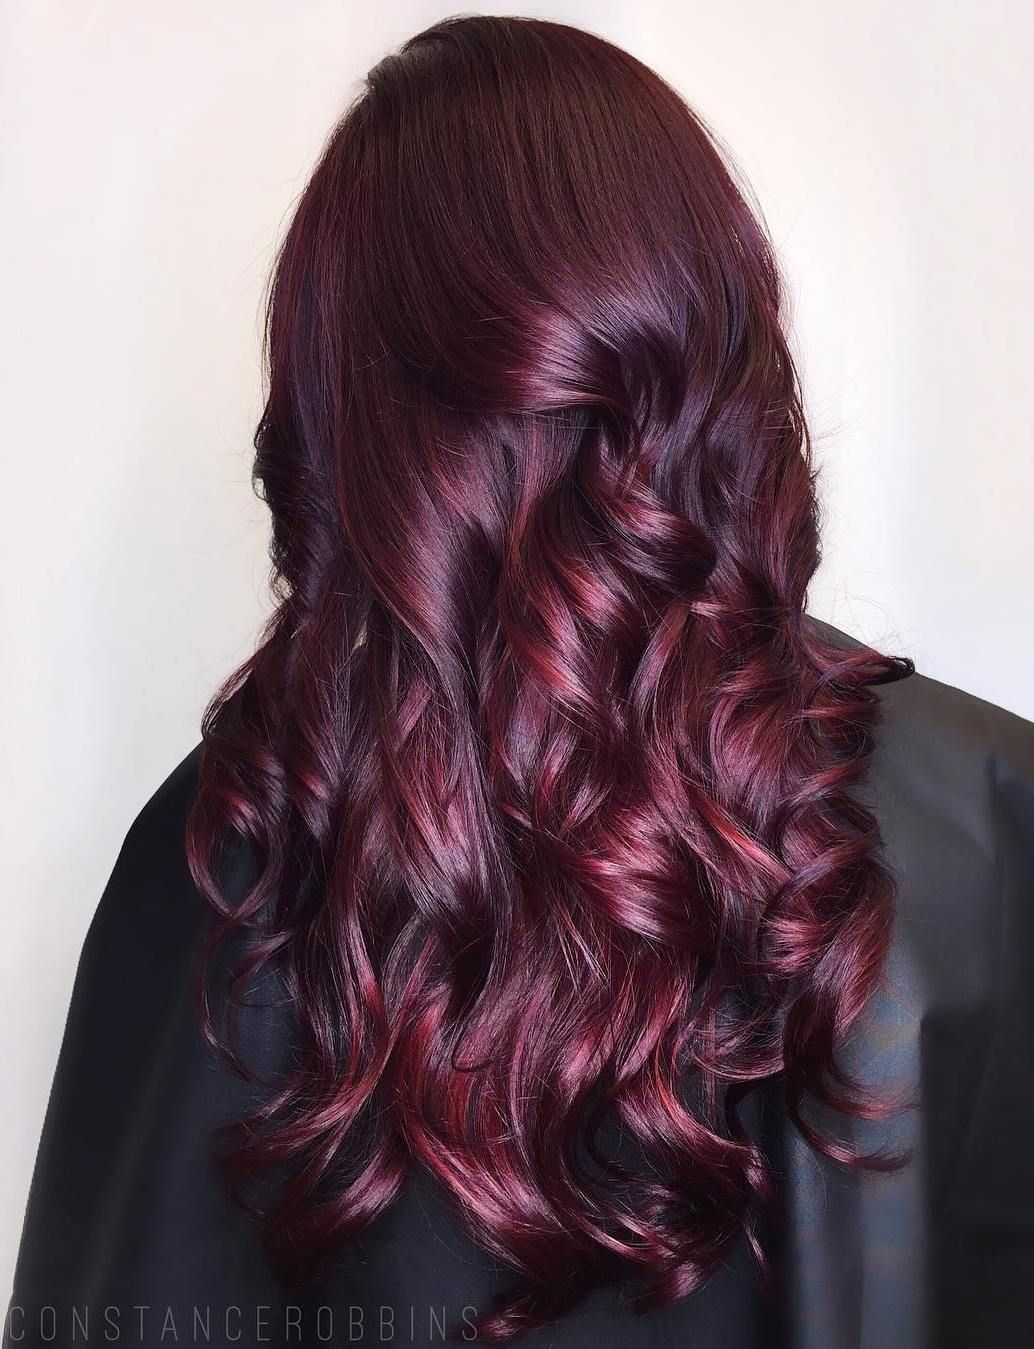 Purple and magenta hair color | Colorful Hair | Pinterest ...